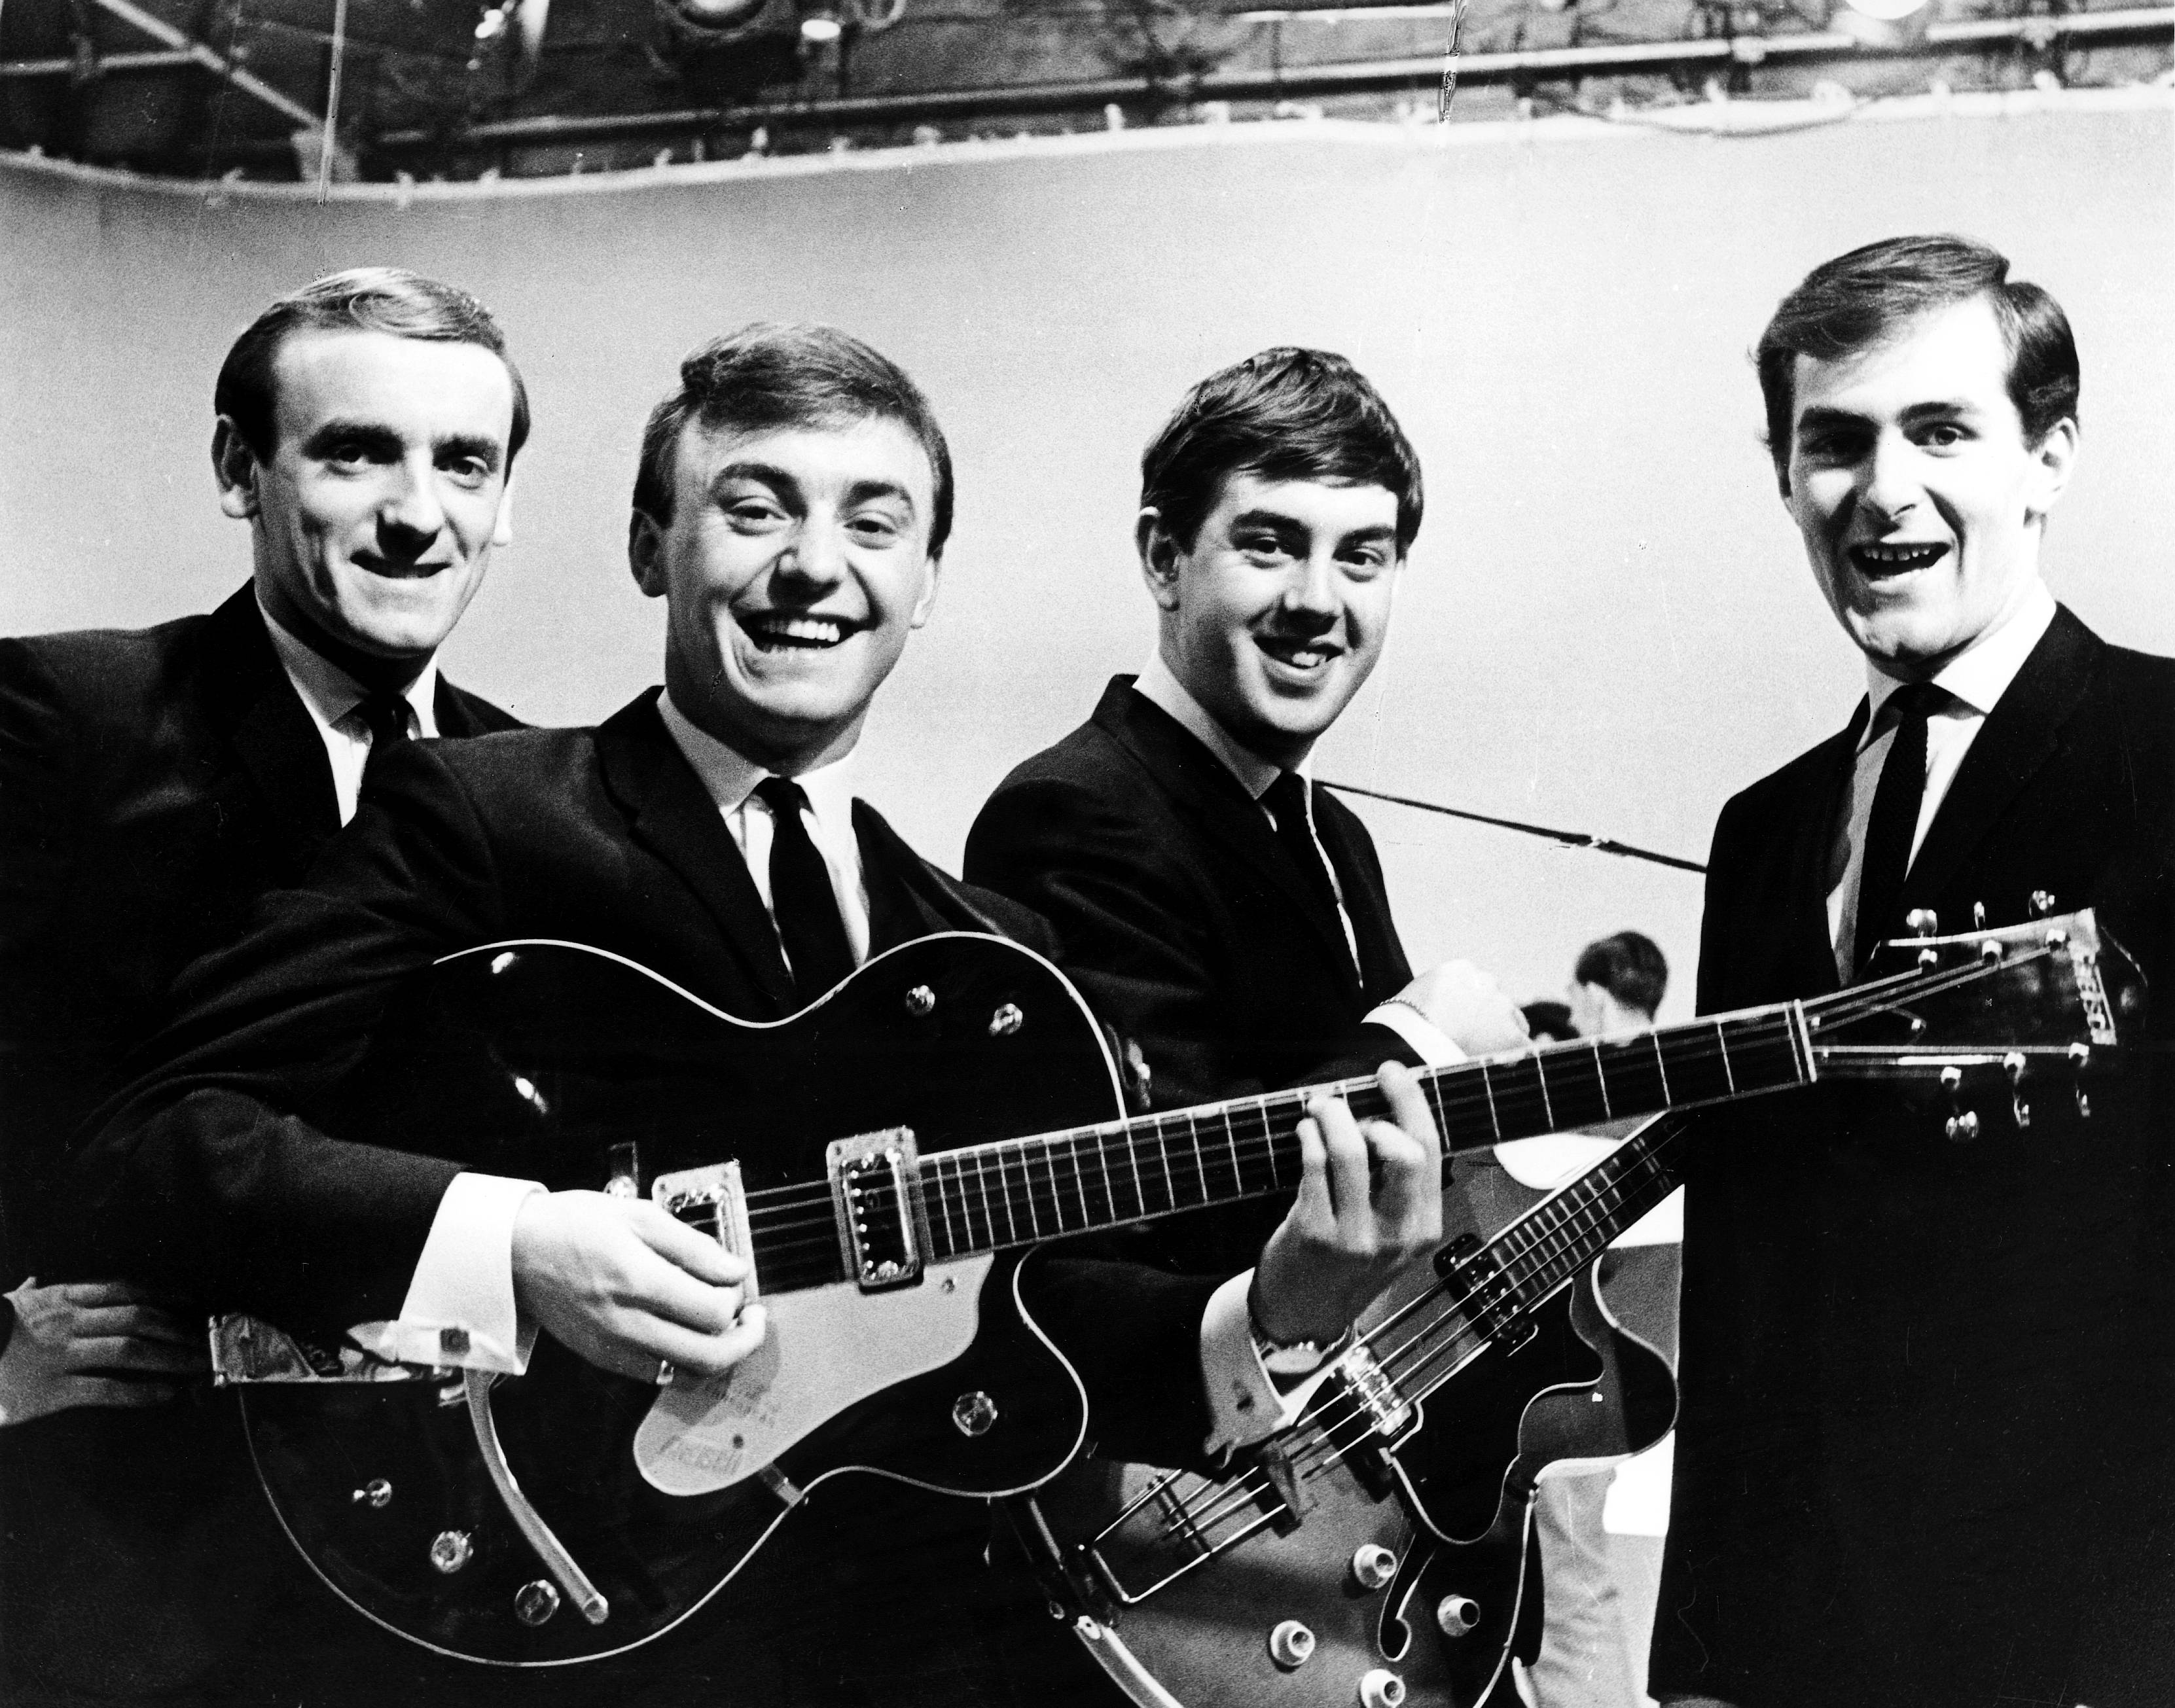 Gerry and the Pacemakers: Where Are They Now? - Rolling Stone